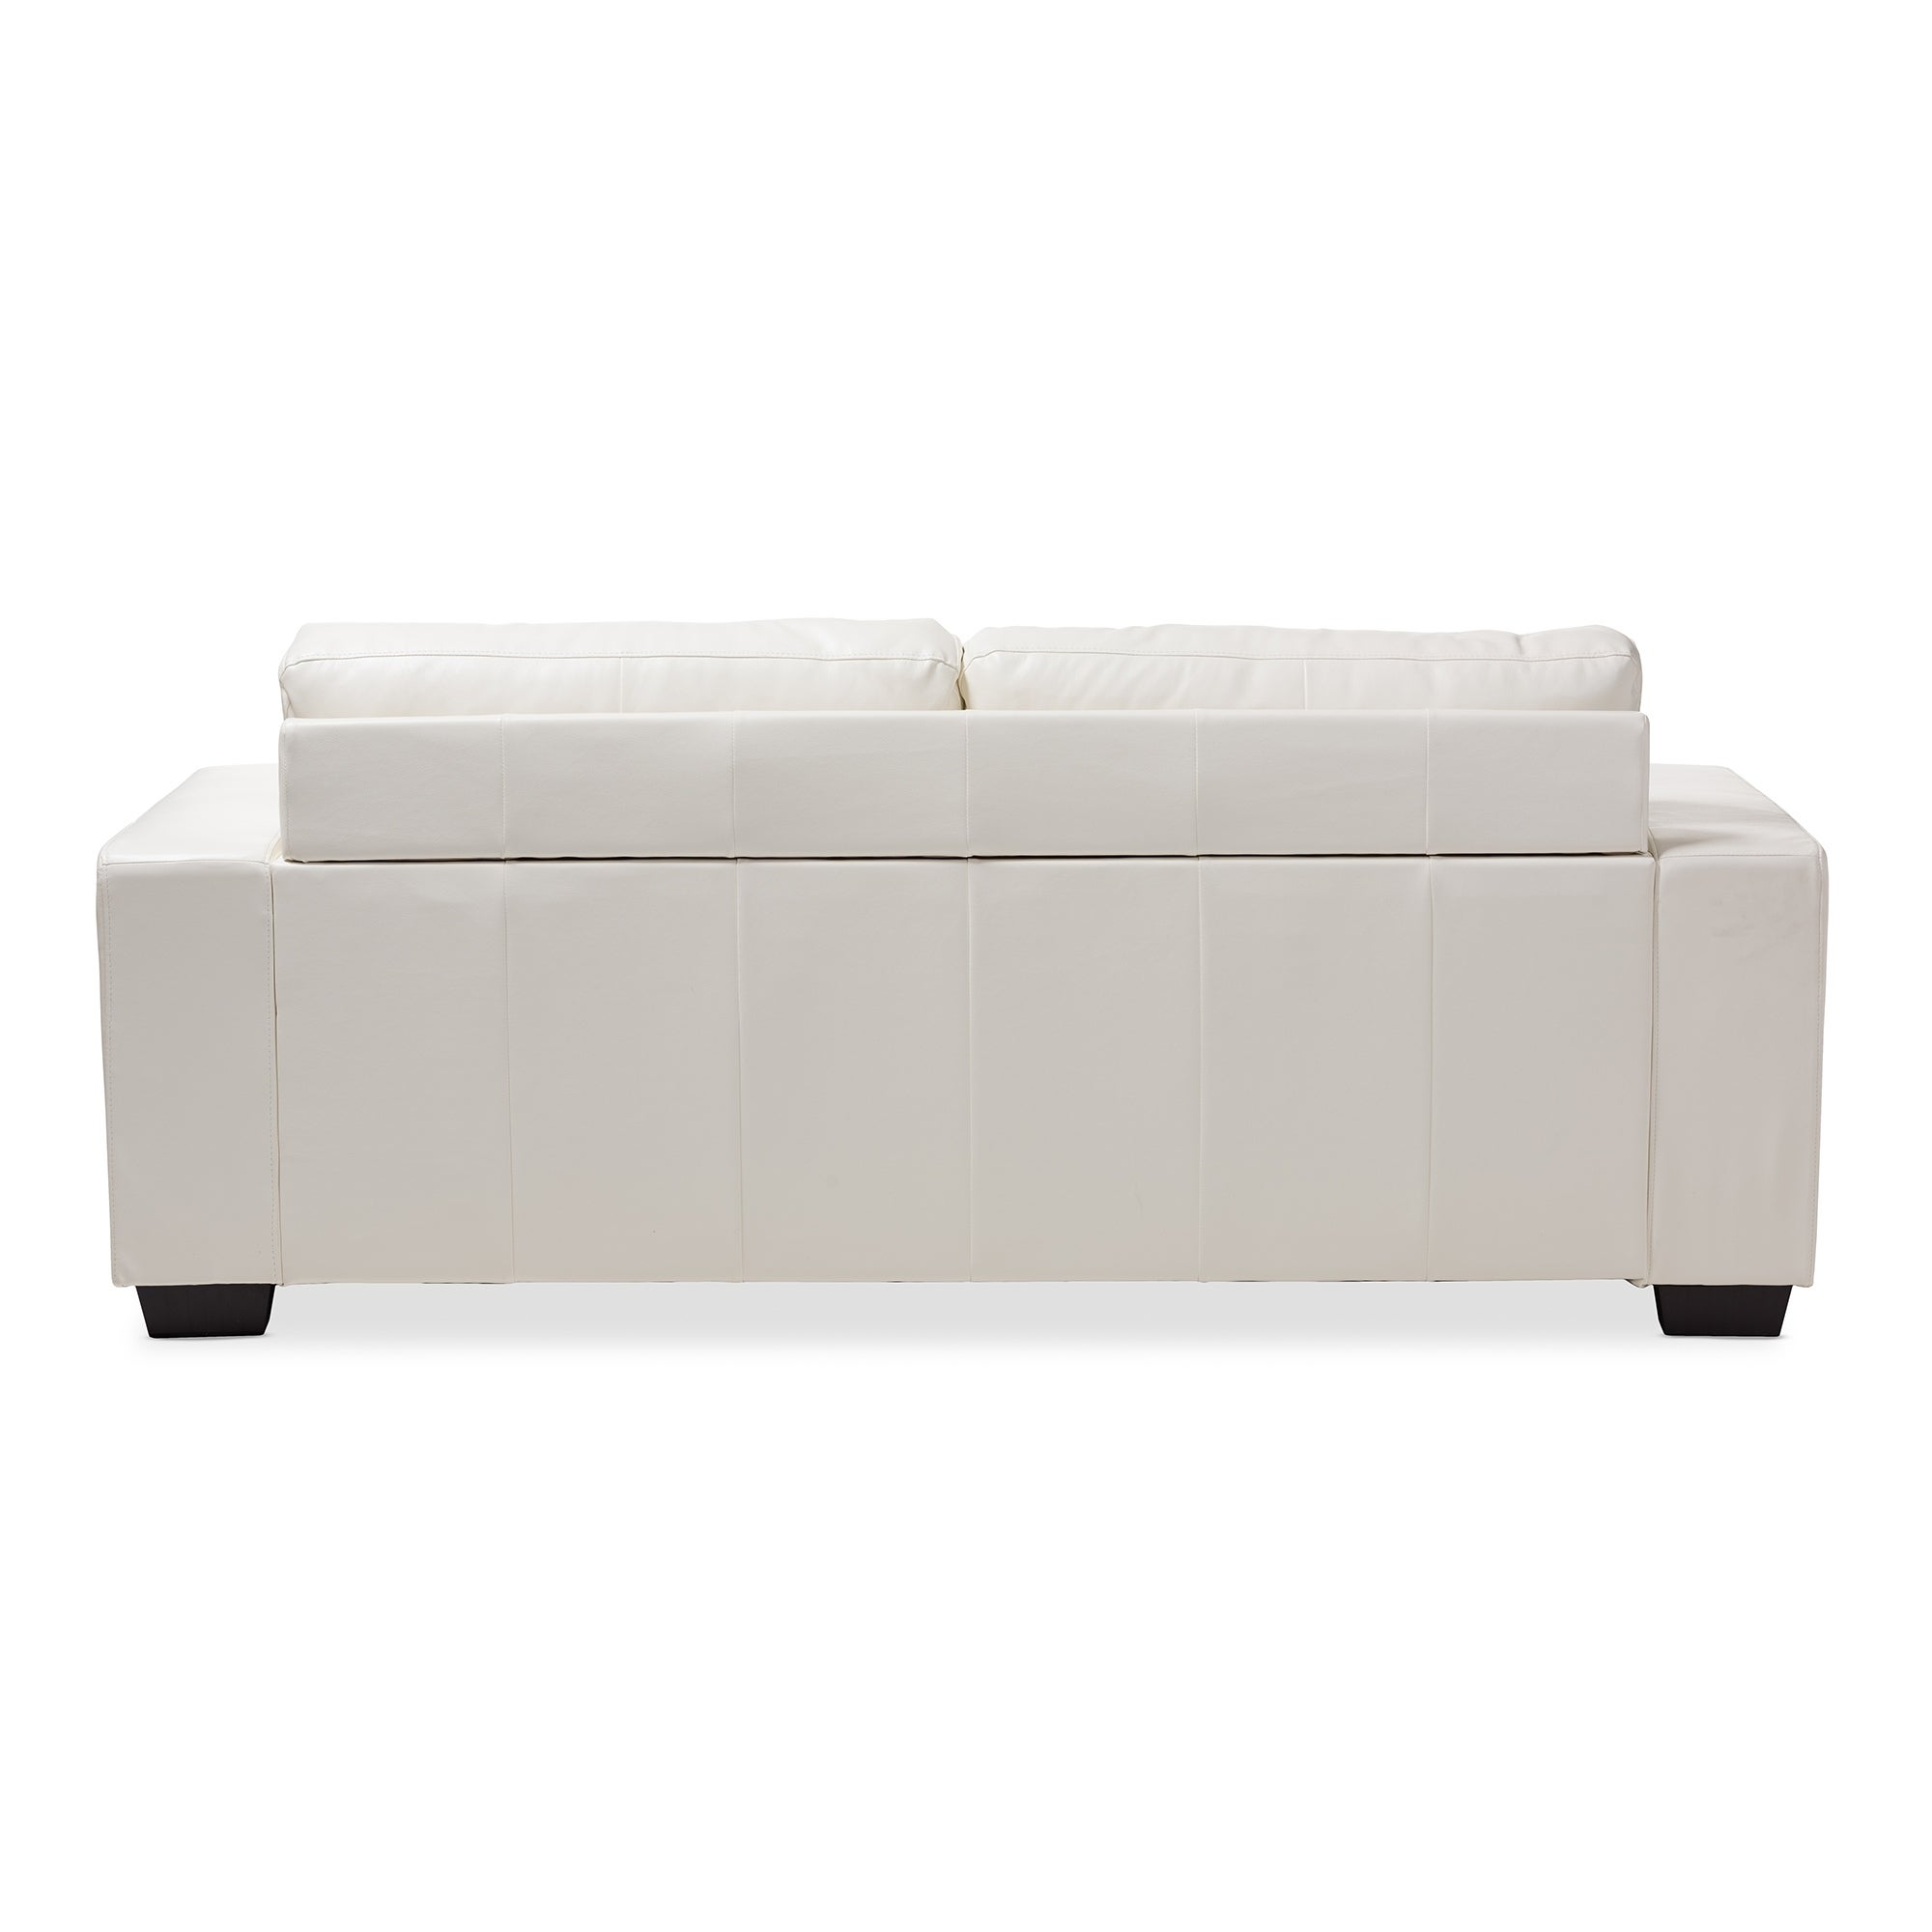 Shop Contemporary White Faux Leather Sofa by Baxton Studio - Free ...